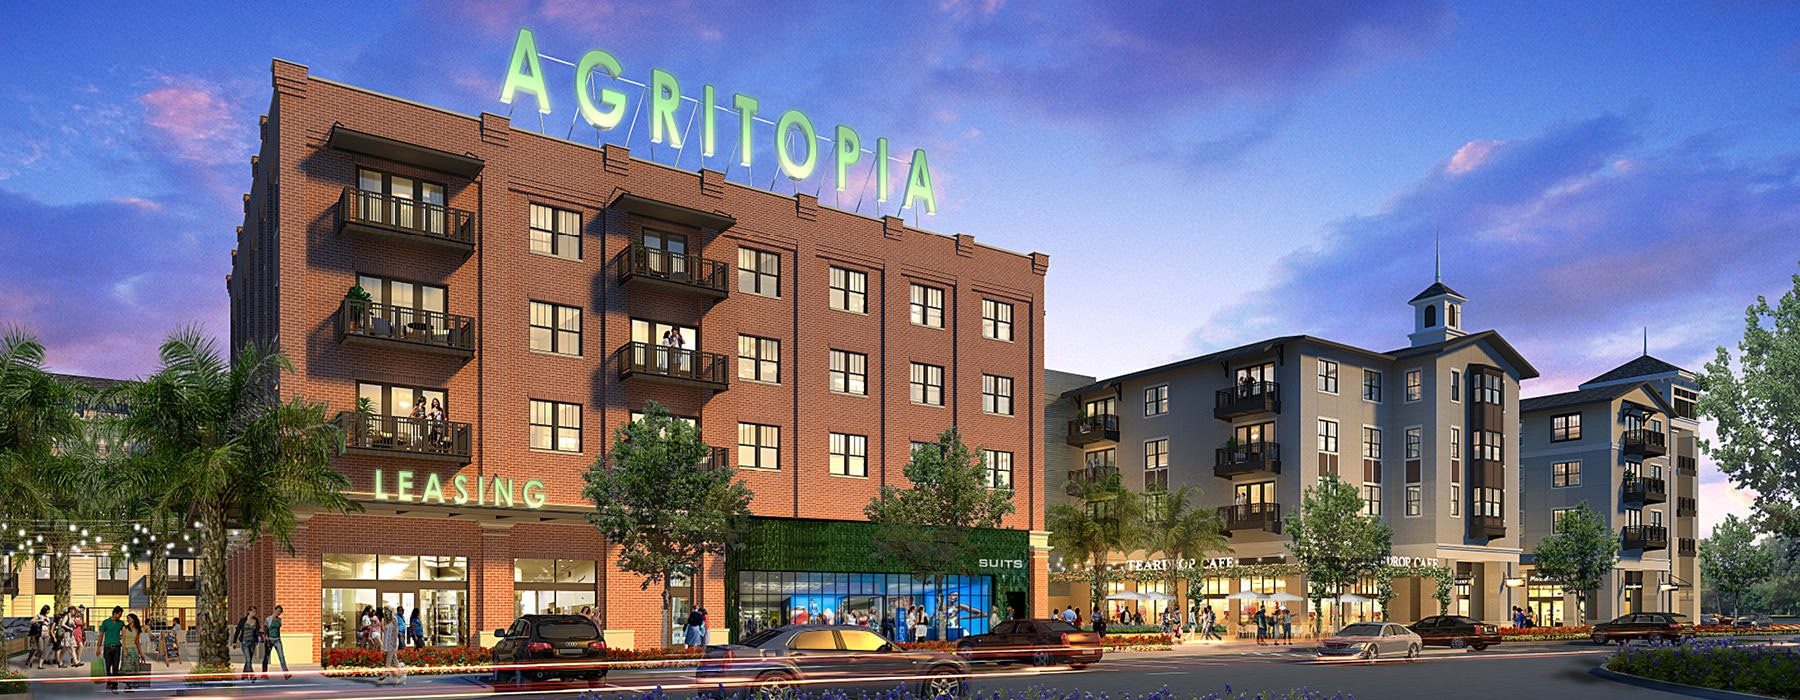 rendering of Agritopia facade and leasing center